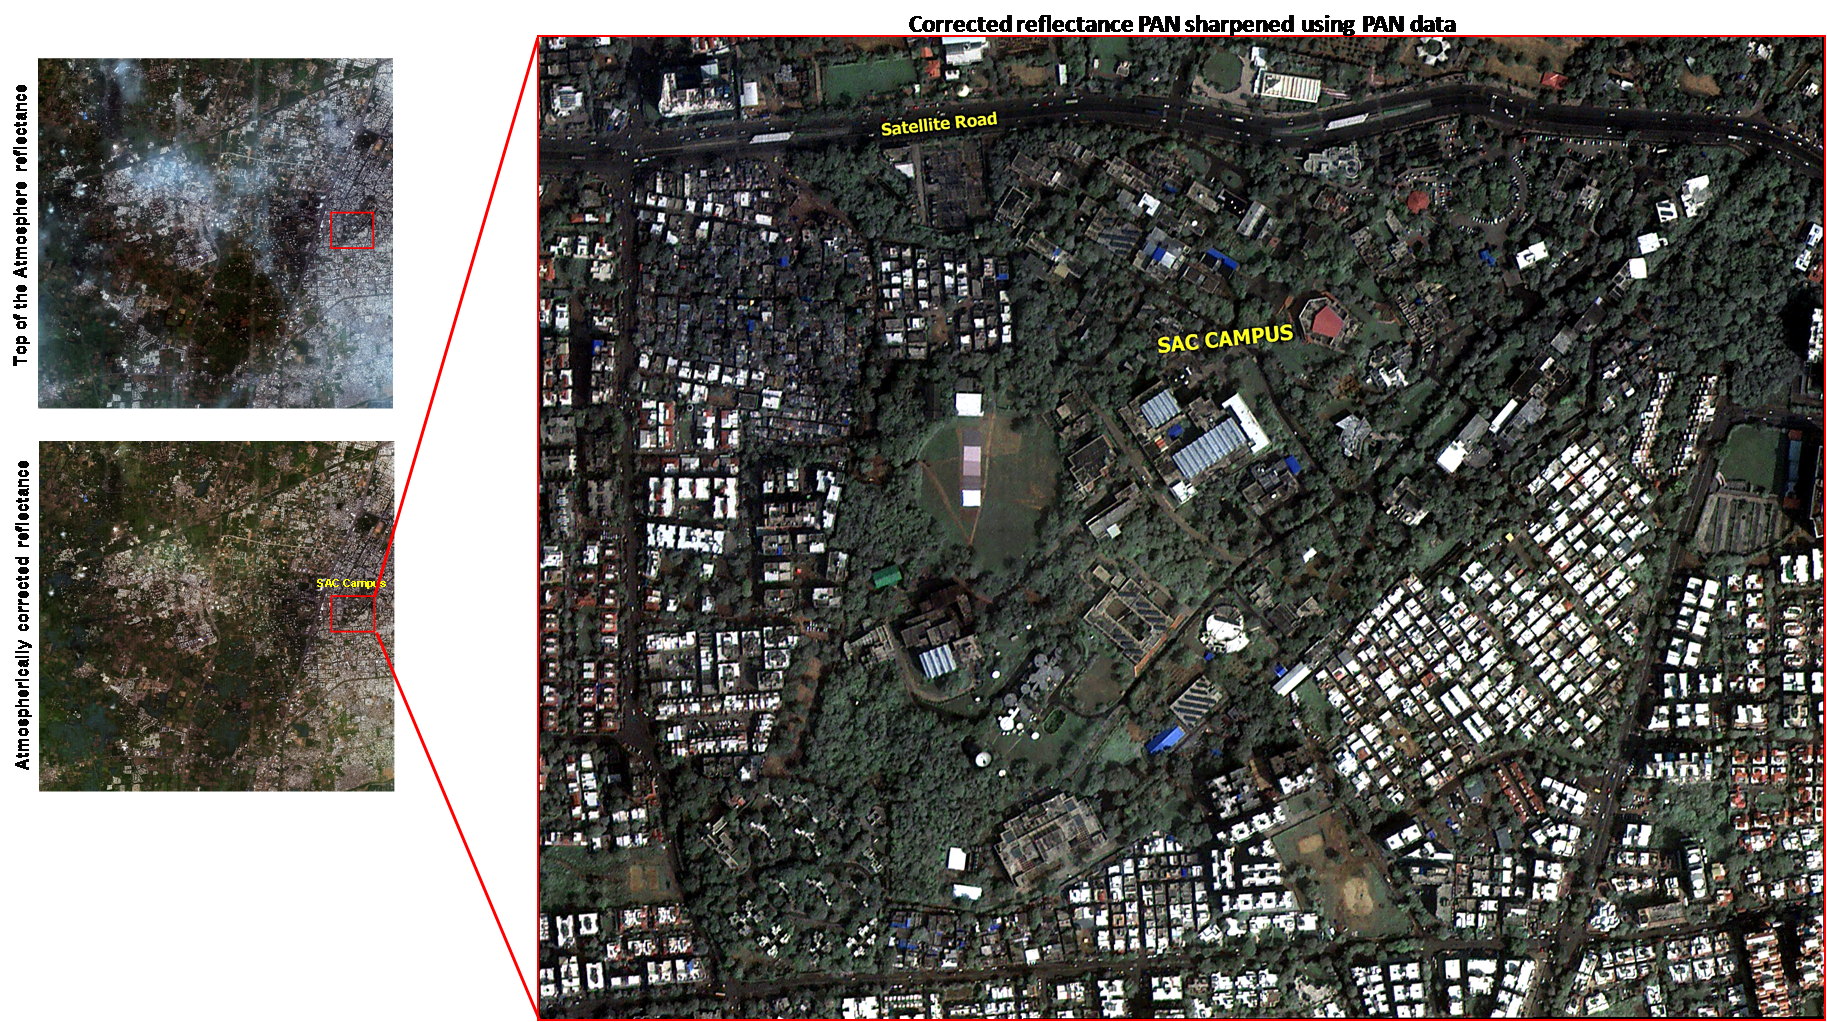 Cartosat-2 Series Satellite View of Ahmedabad , Satellite Area on 03/11/2016